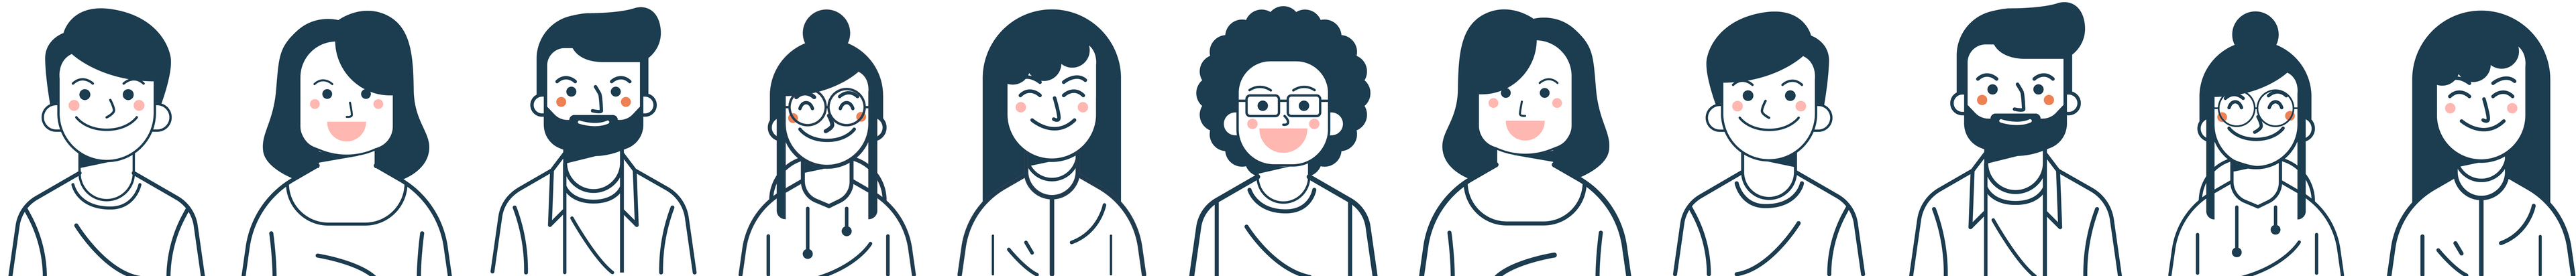 cartoon people side by side smiling